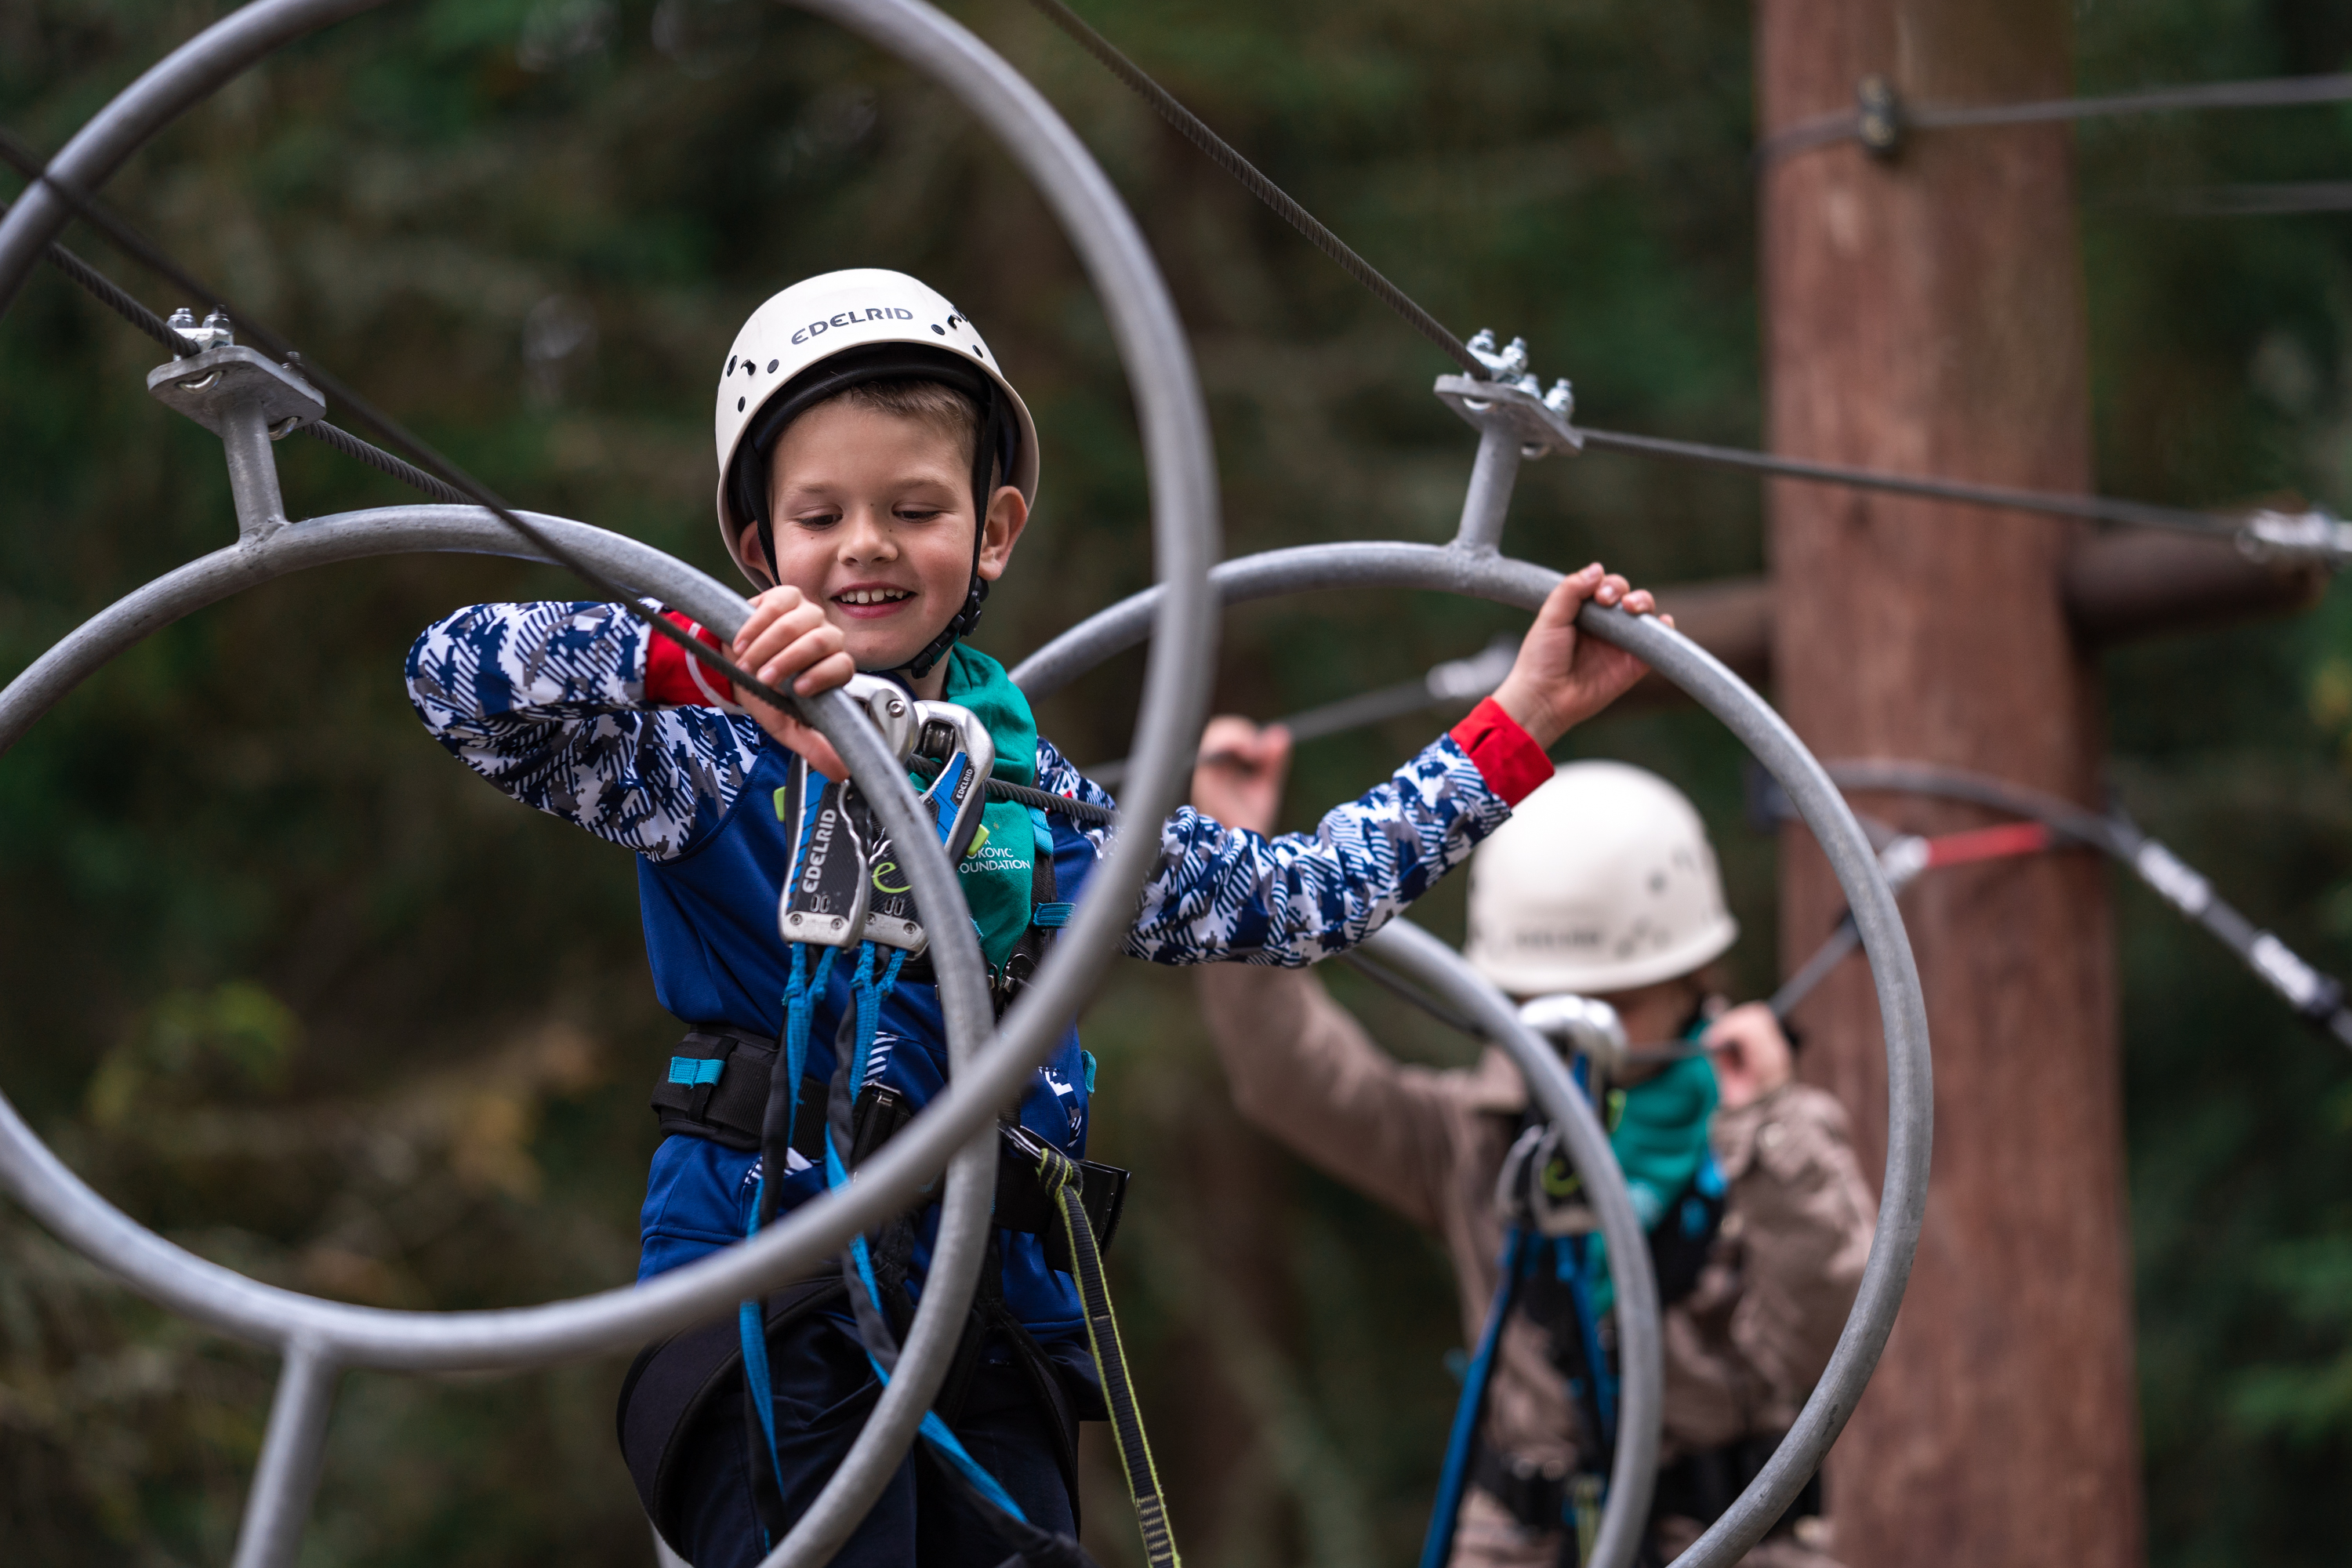 Children enjoyed various activities-they were zip-lining, climbing and jumping hoops.